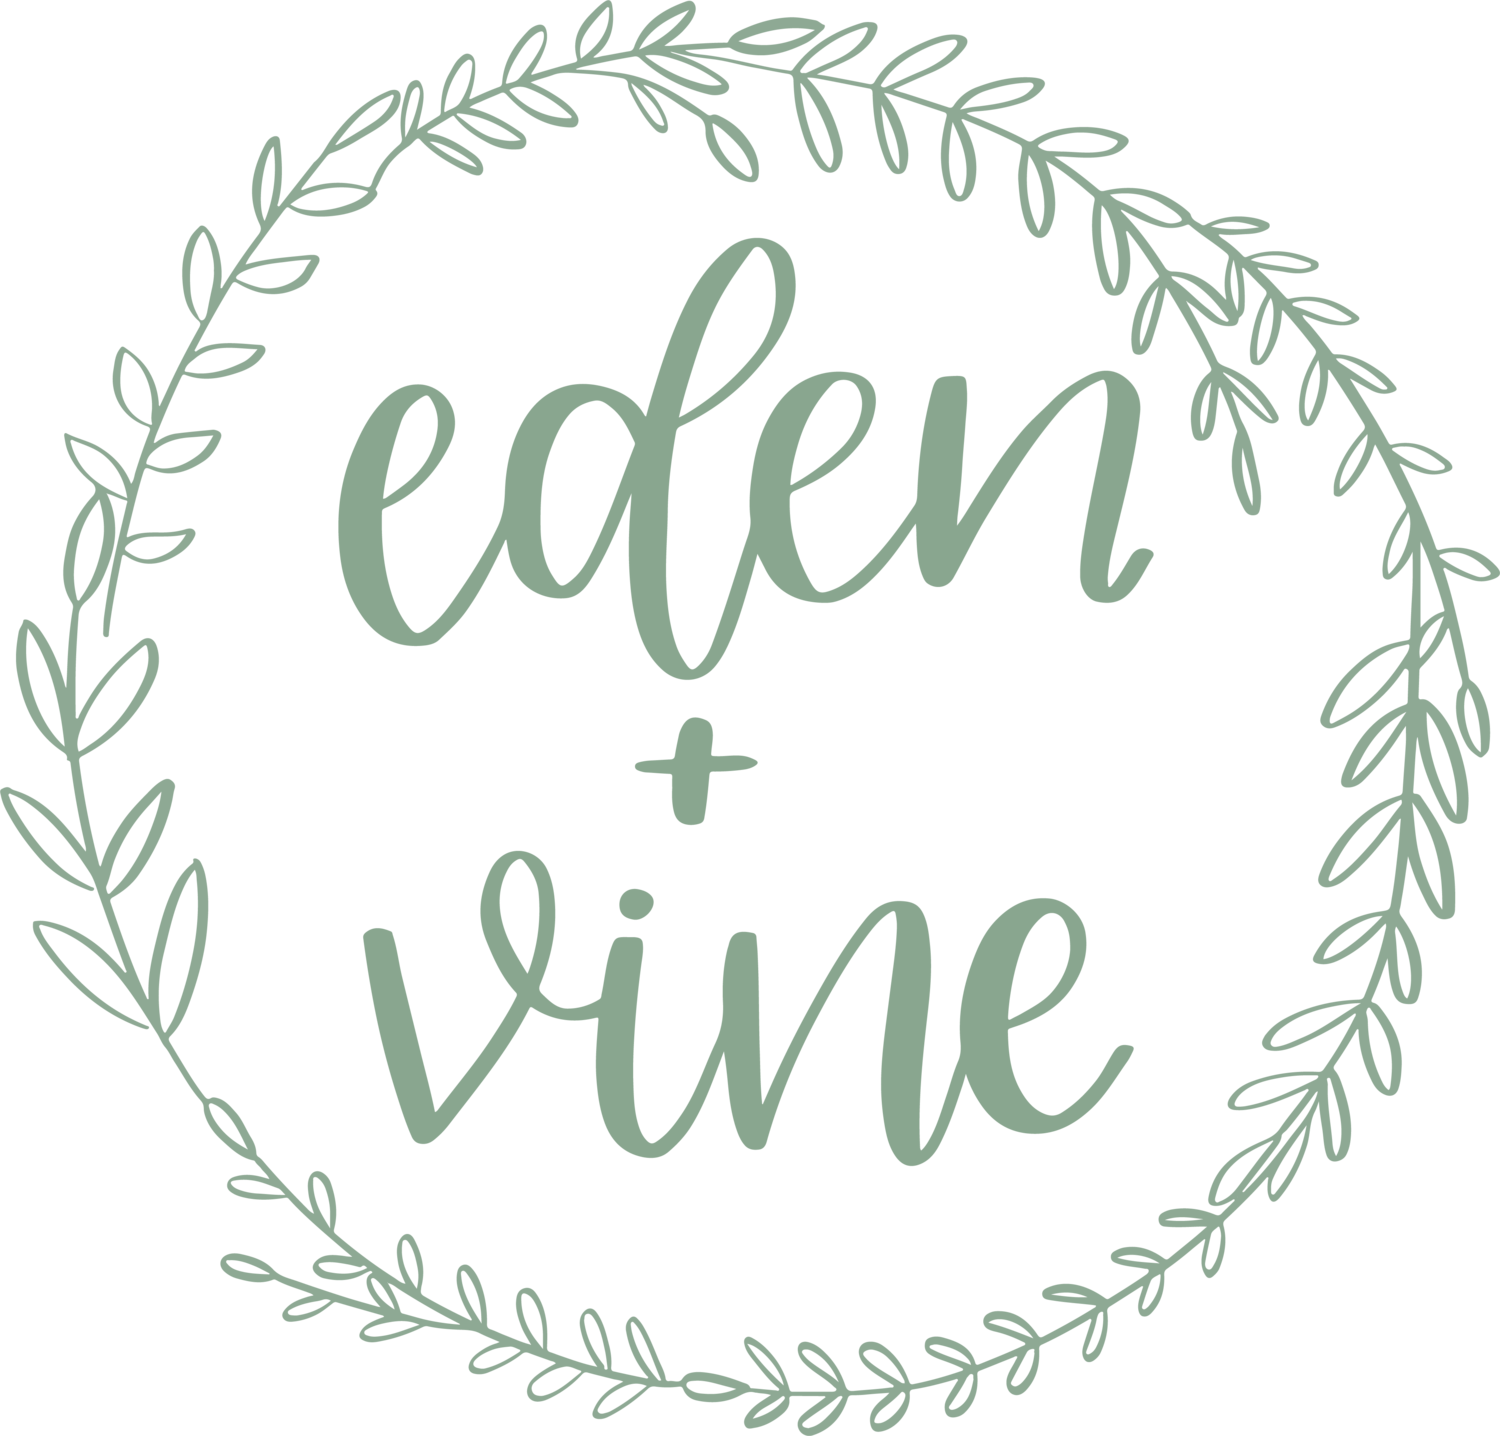 Official Site of Eden + Vine - Handlettering and Wedding Services